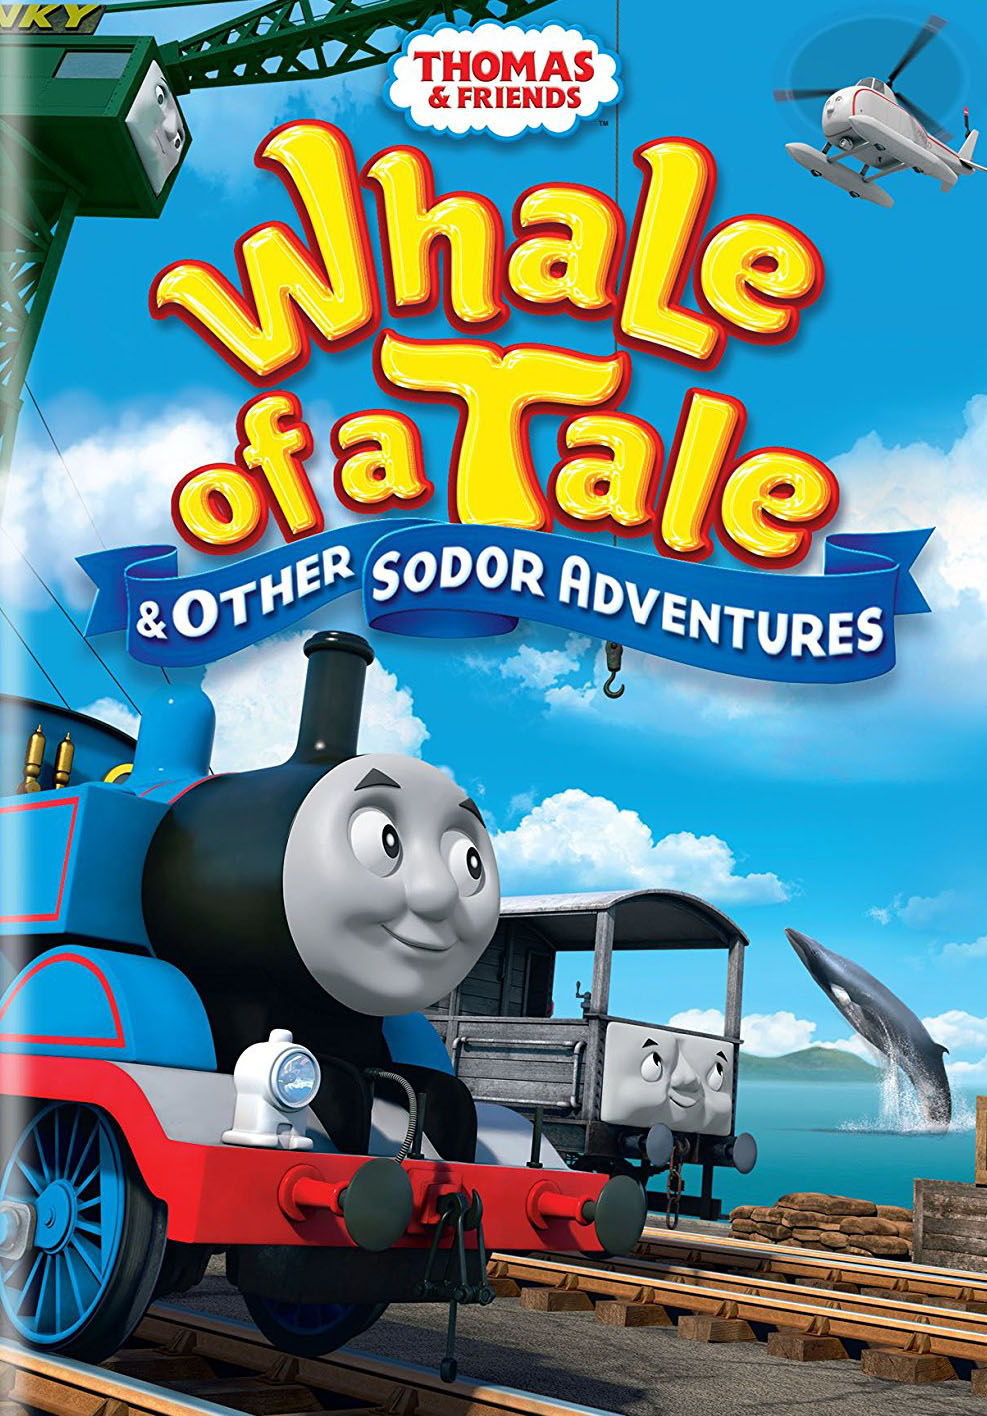 Whale of a Tale and Other Sodor Adventures